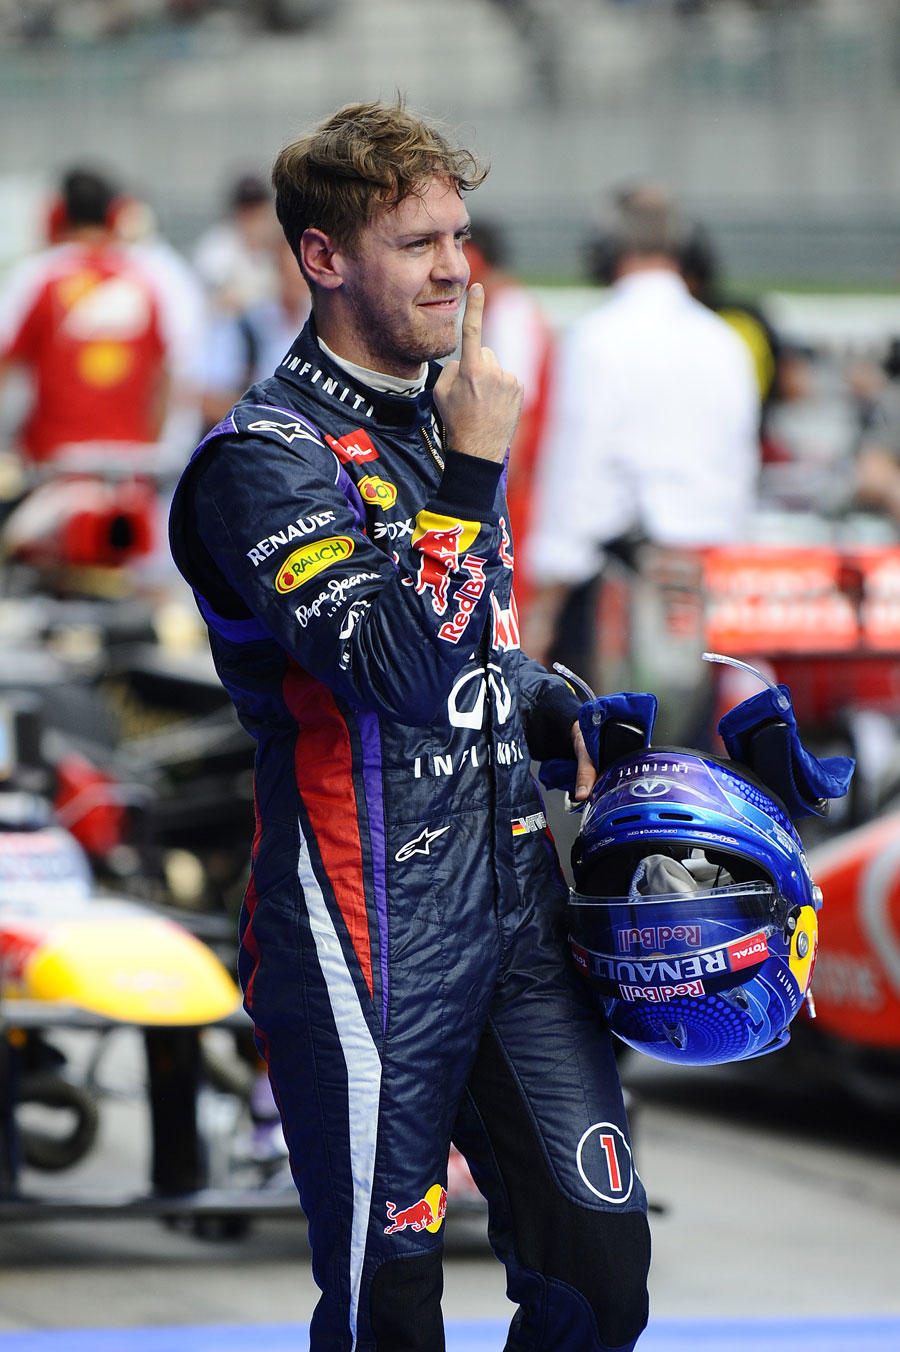 The customary Sebastian Vettel celebration after qualifying on pole